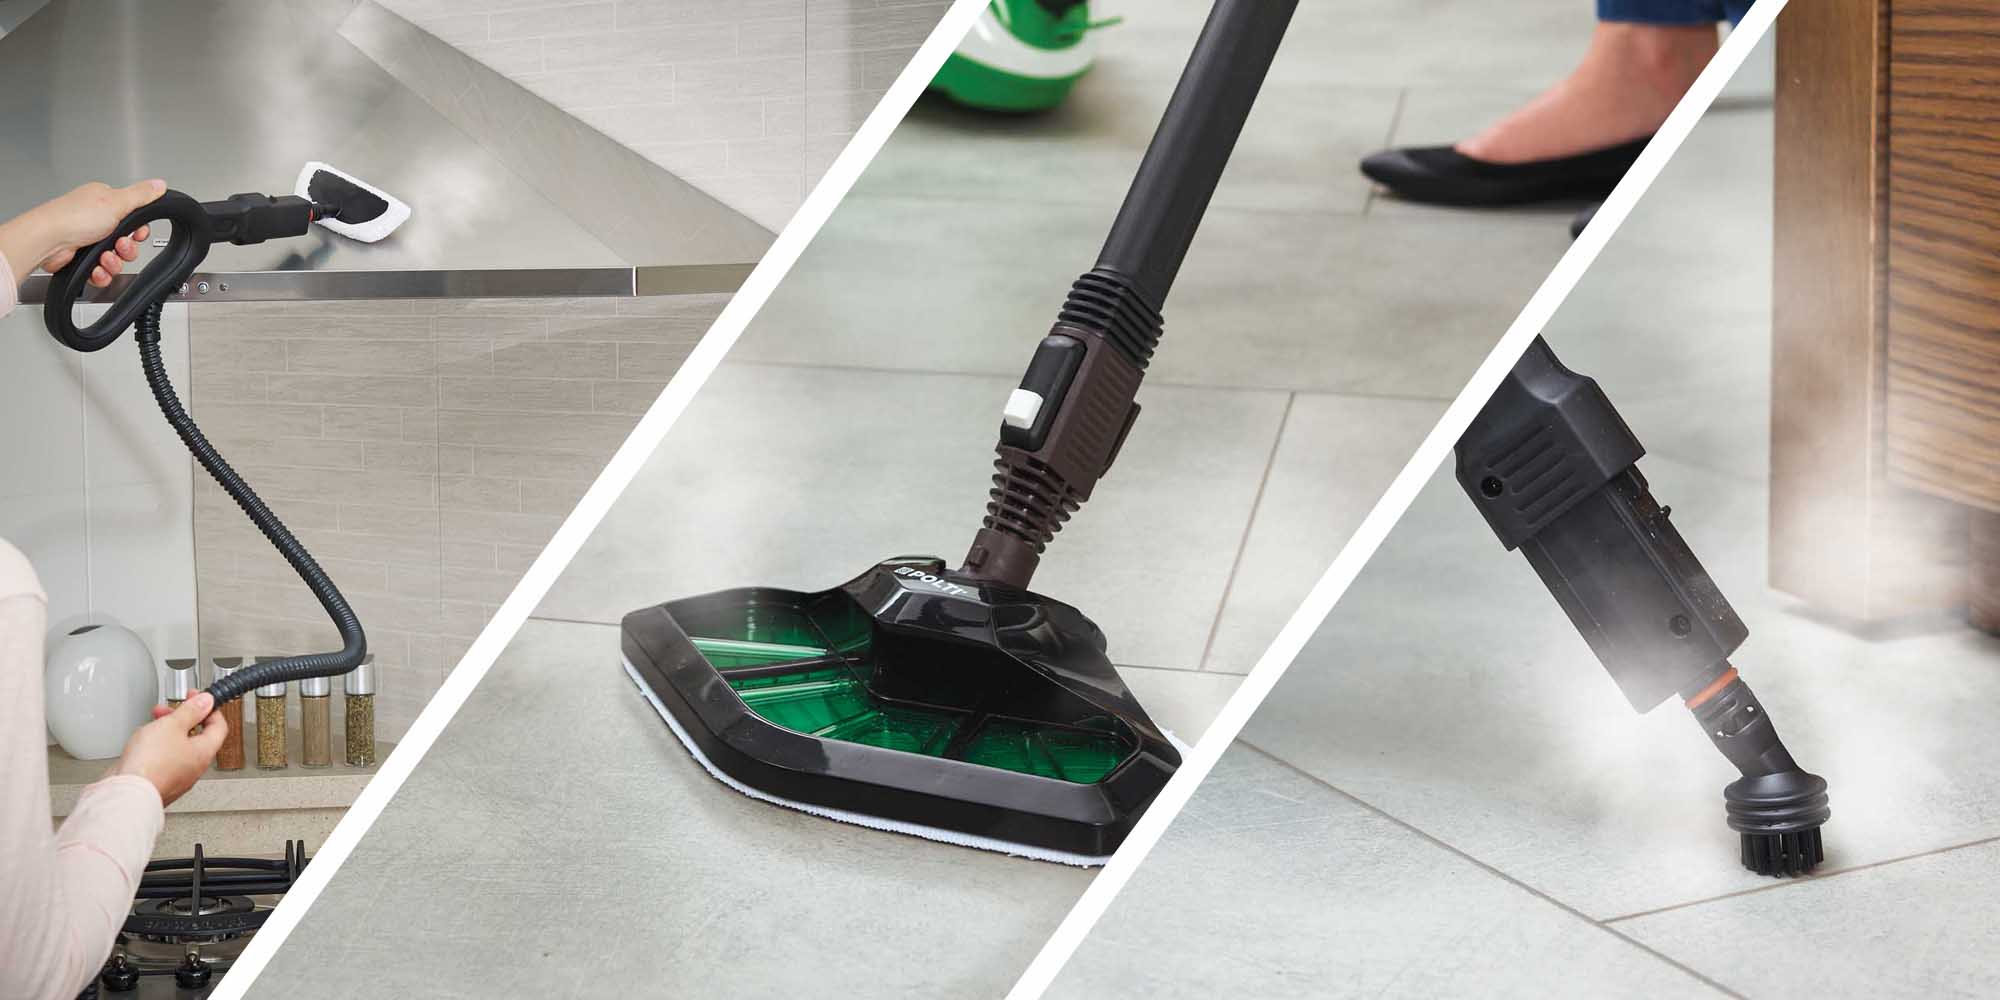 Vaporetto Smart 35_Mop surface cleaning